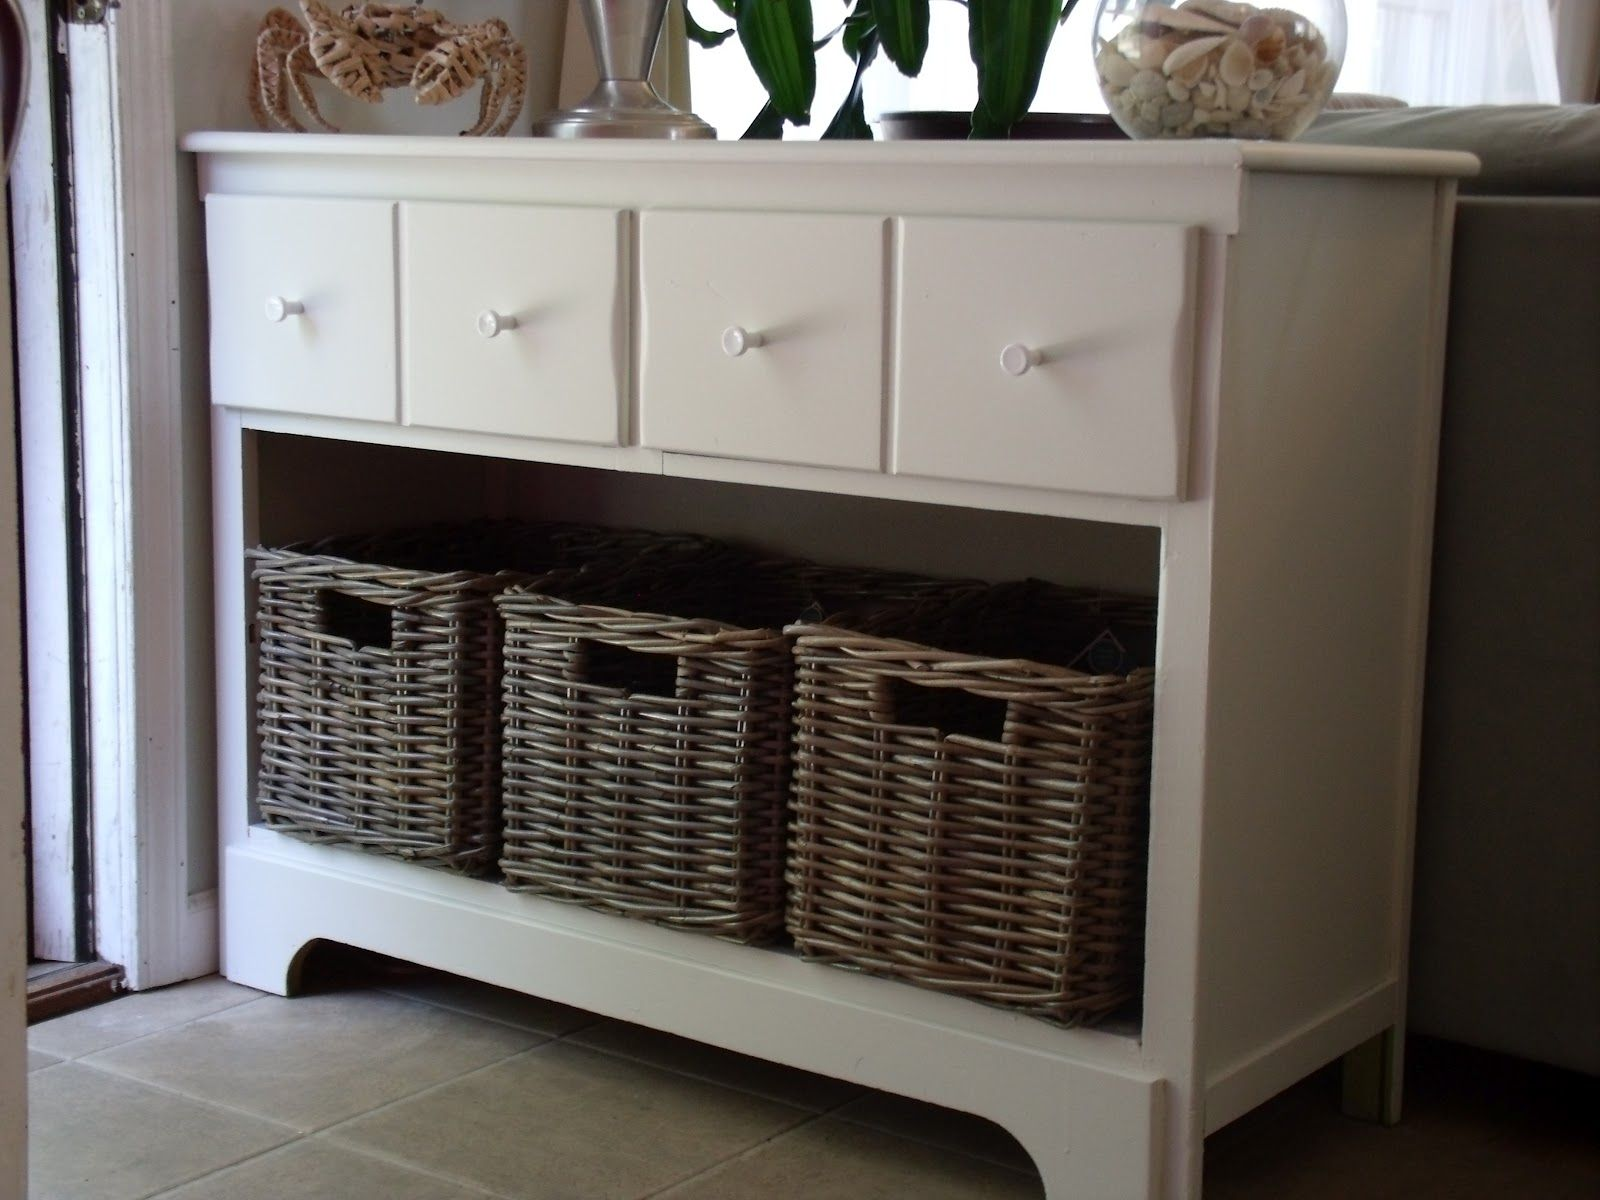 A Hive Of Projects Dresser To Entry Shoe Storage Cabinet Entryway Storage Entryway Bench Storage Entryway Storage Cabinet